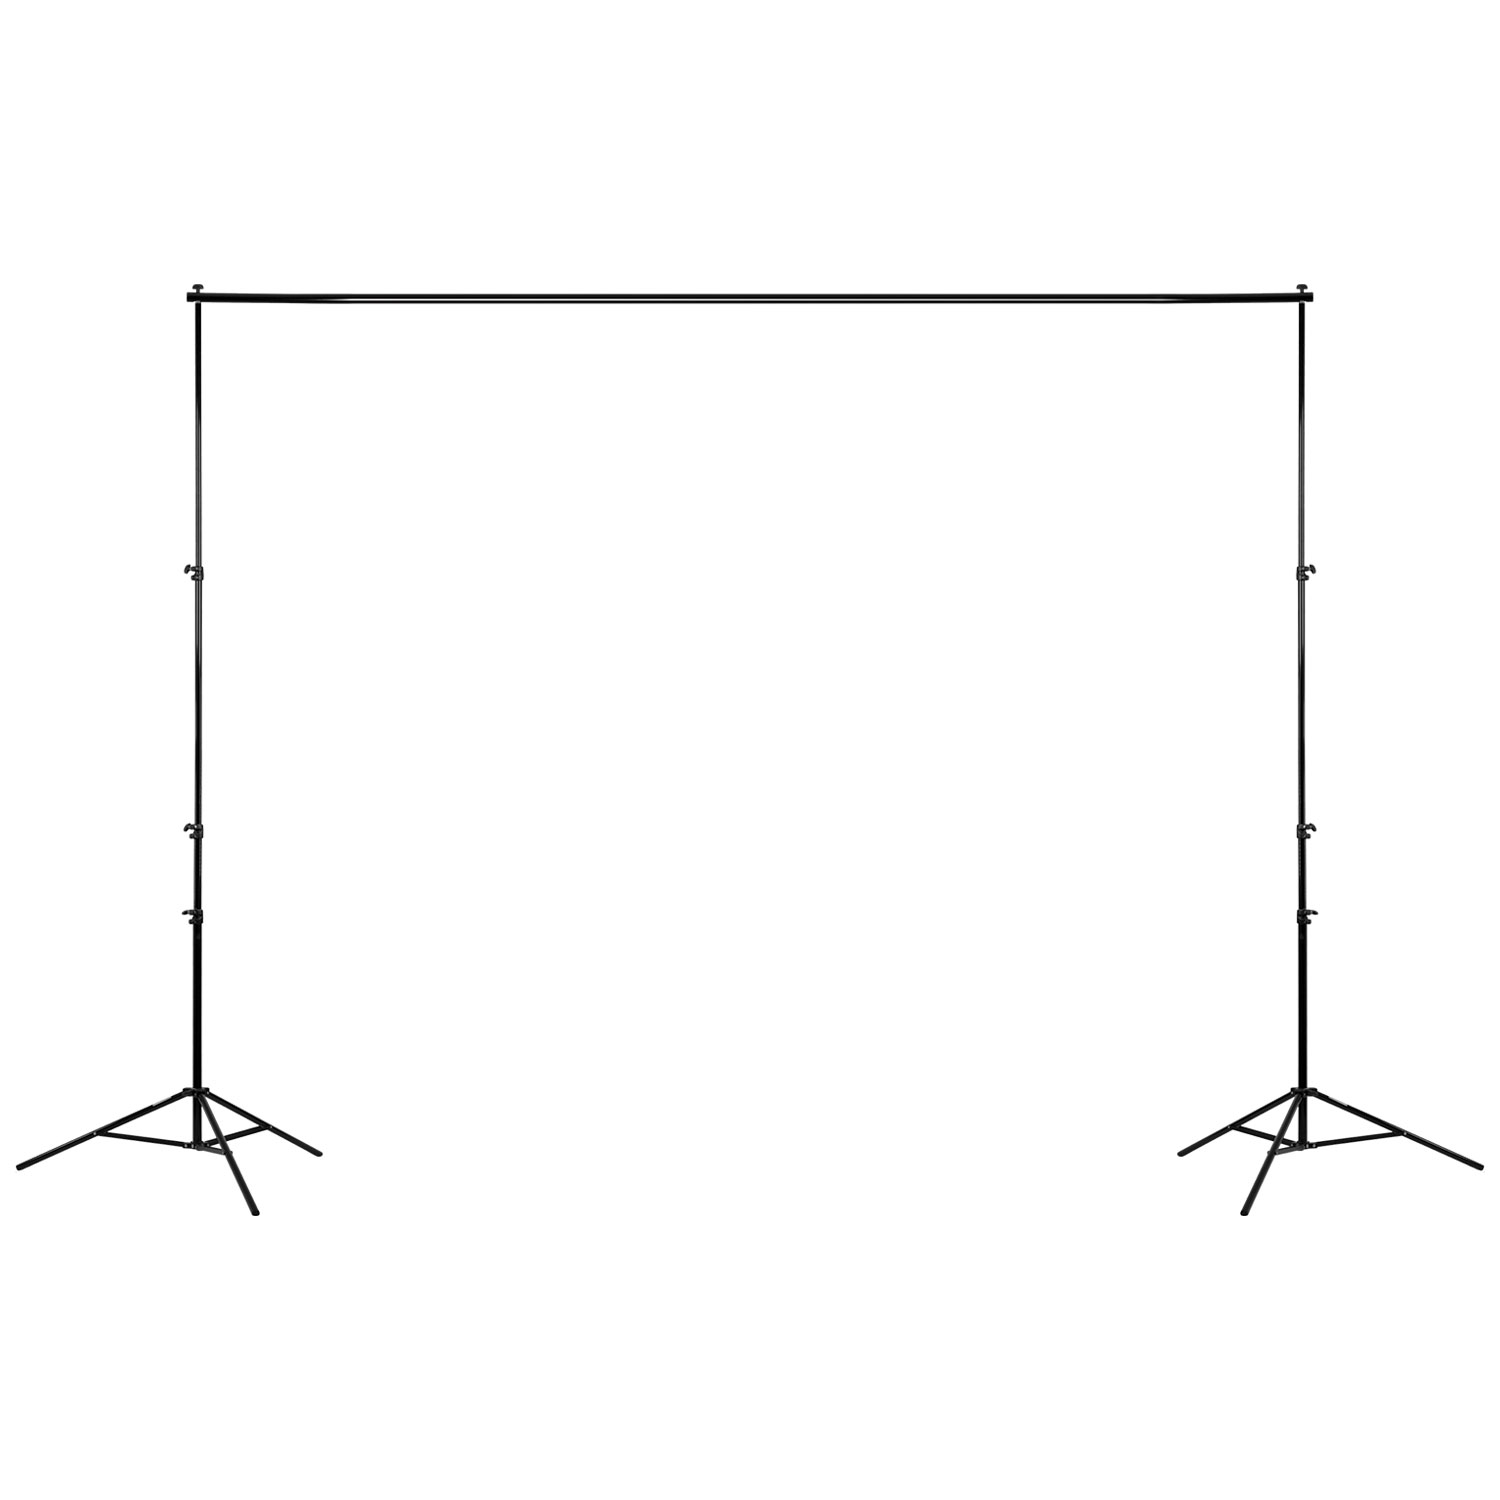 Background Support System (10.5' width)